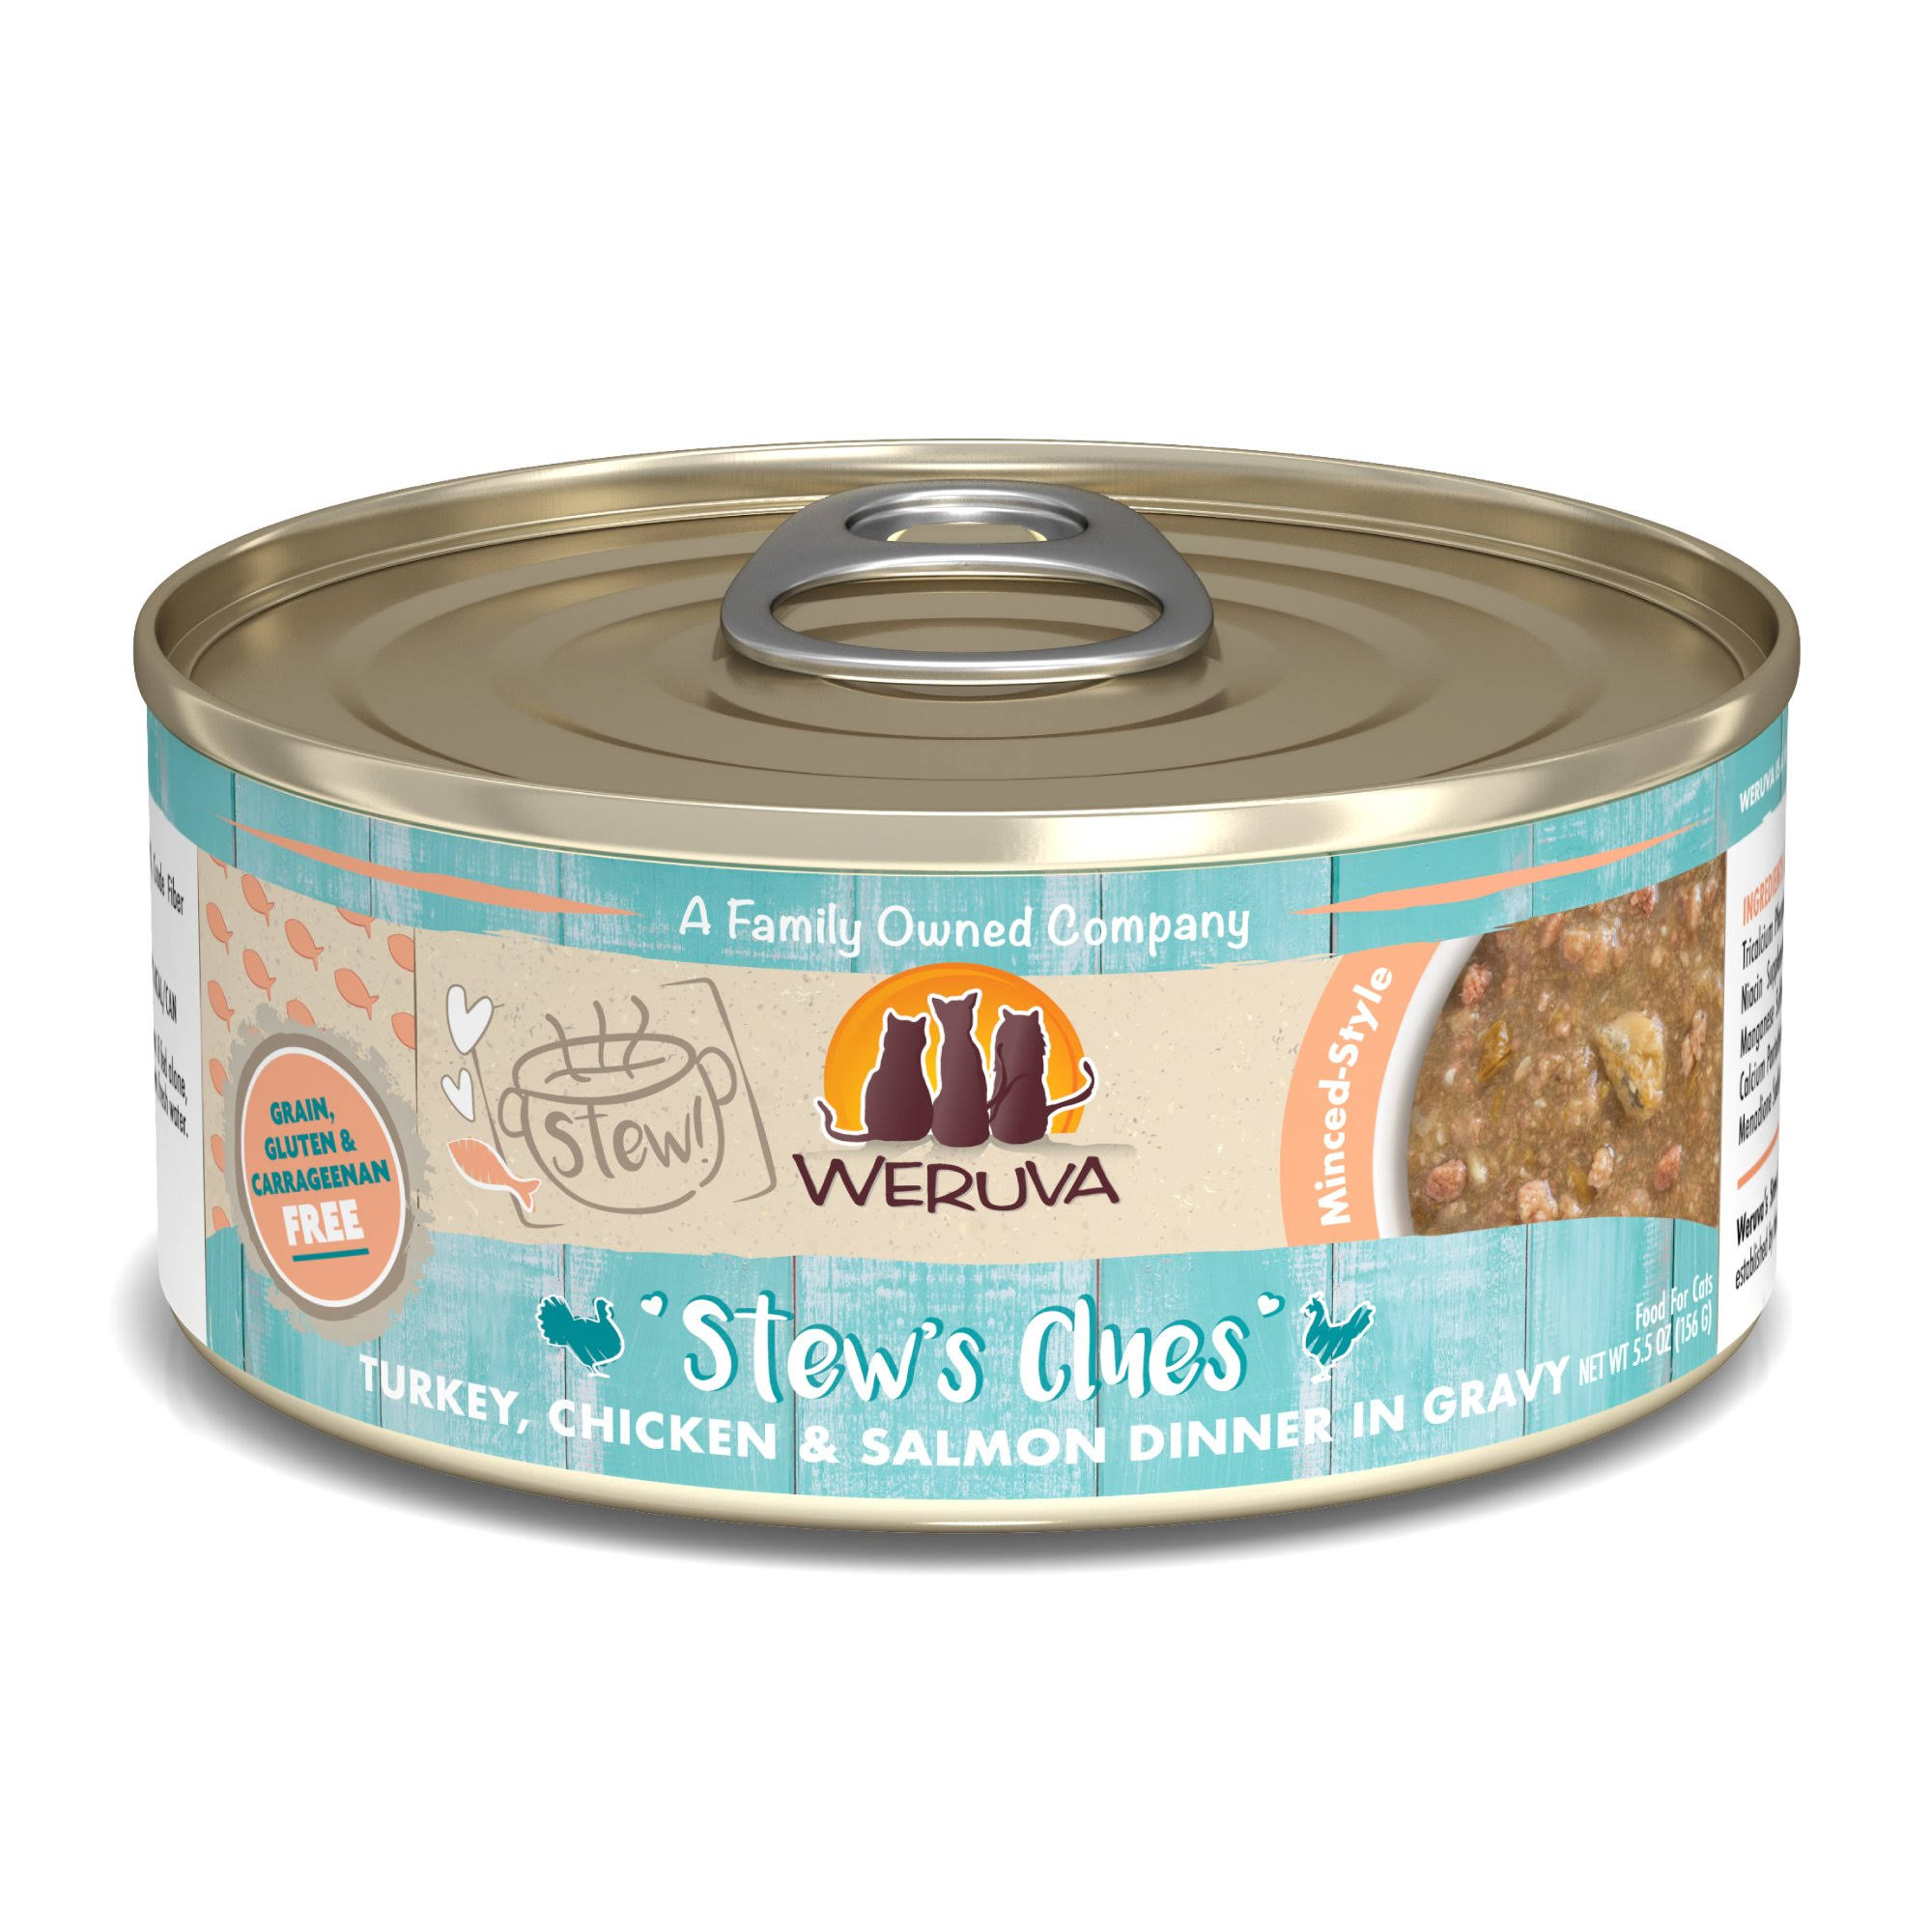 Weruva Stew! Stew's Clues Turkey, Chicken & Salmon Dinner in Gravy Food for Cats - 5.5 oz